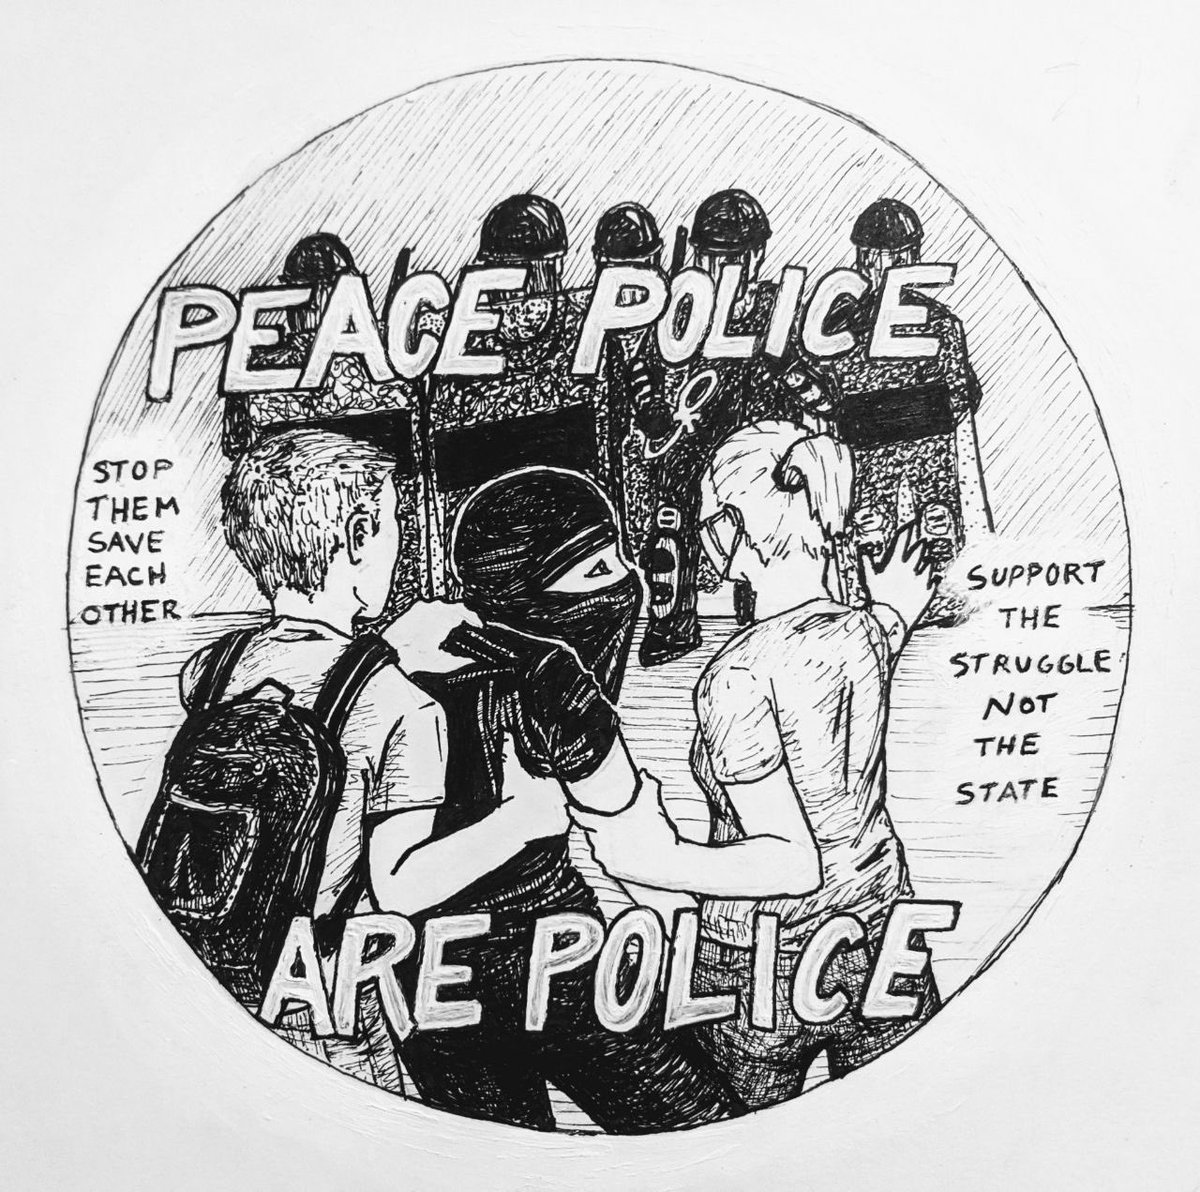 If you're gonna use violence to police other protestors, our fight is just as much with you as it is with the cops on uniform; you just do that shit for free. The pigs don't need any help. Anyone ready to fight a fellow protestor before the police is on the other side. full stop. pic.twitter.com/oH1TCbcWKJ  by PNW Youth Liberation Front